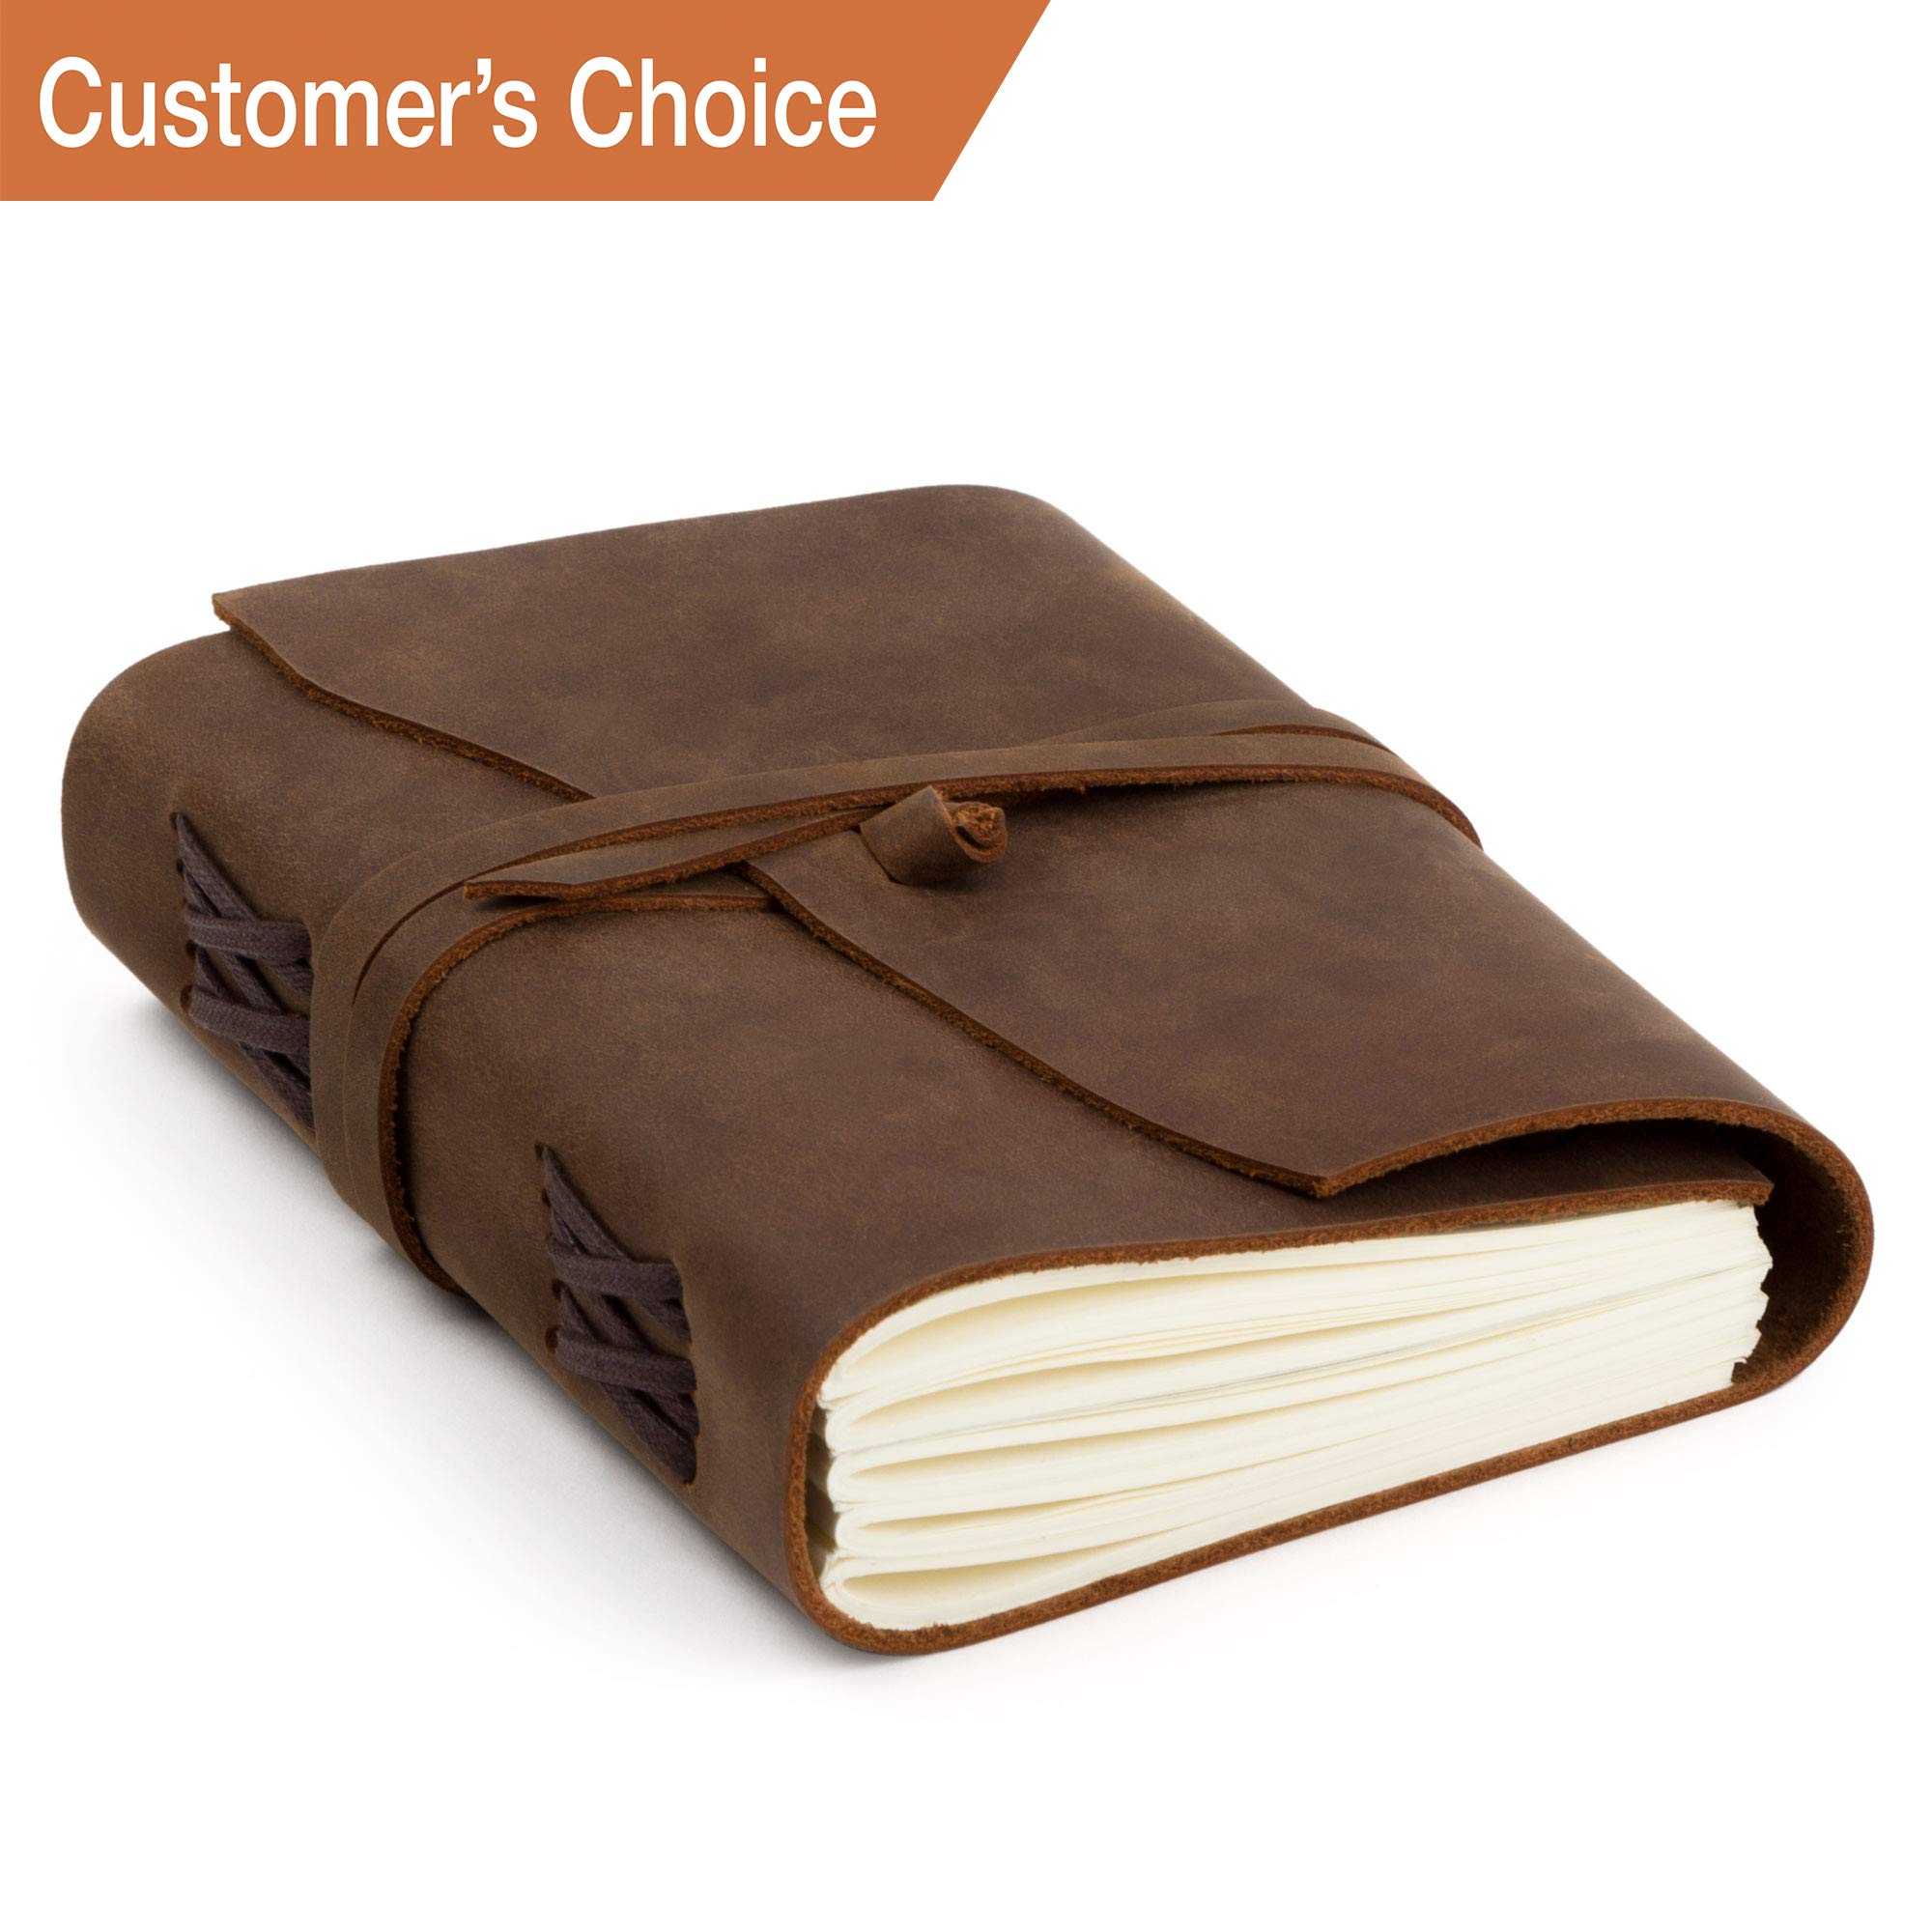 Leather Journal - Writing Notebook for Men & Women Leather Bound - Daily Notepad Art Sketchbook & Travel Journal - Best Gift Ideal Present - Vintage Dairy Unlined Paper Planner to Write in